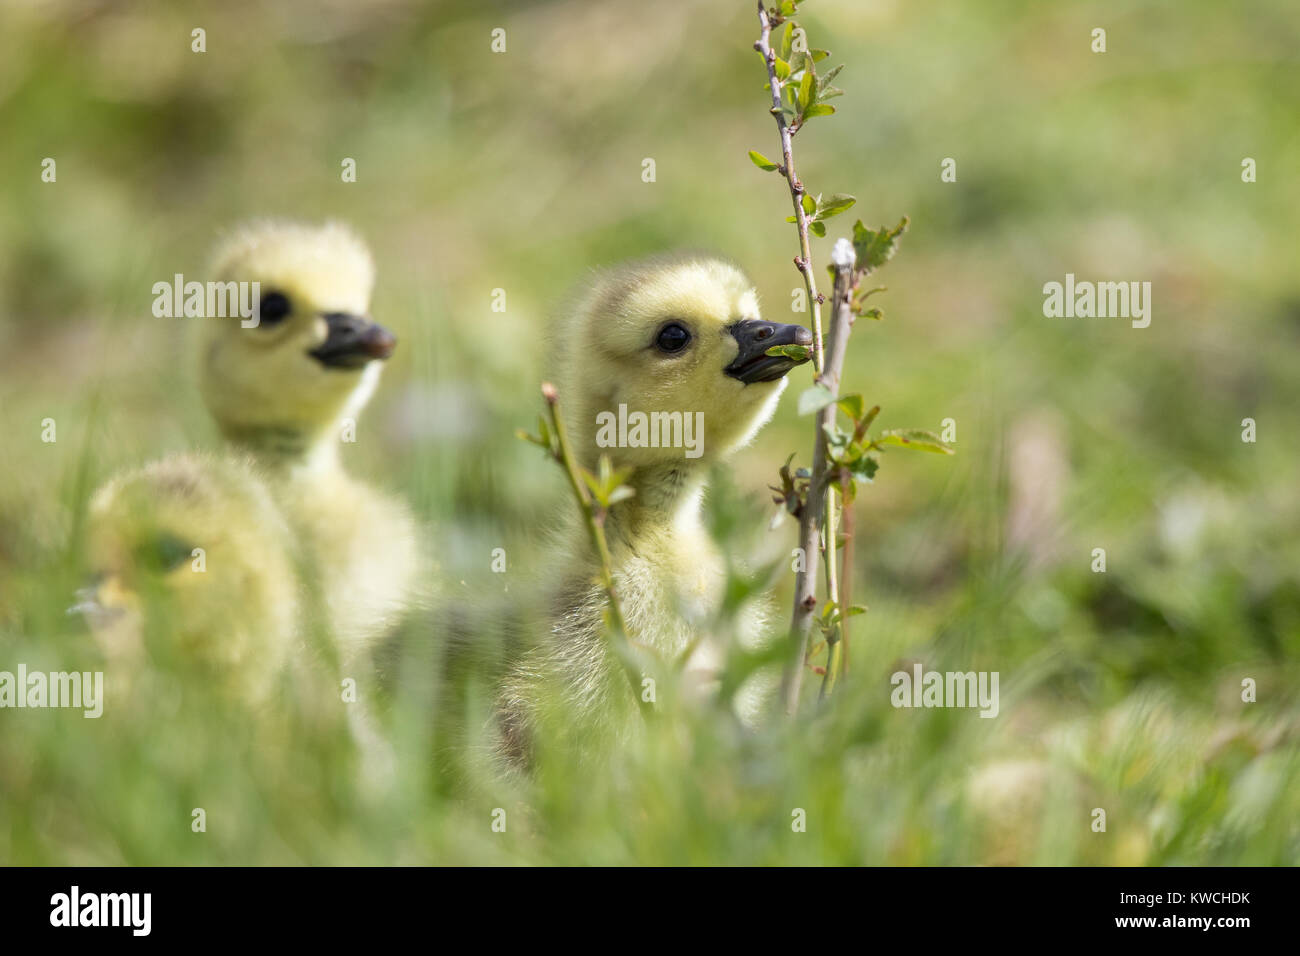 Detailed, landscape close up of very young, fluffy gosling chicks out enjoying sunshine, exploring in the grass; - Stock Image